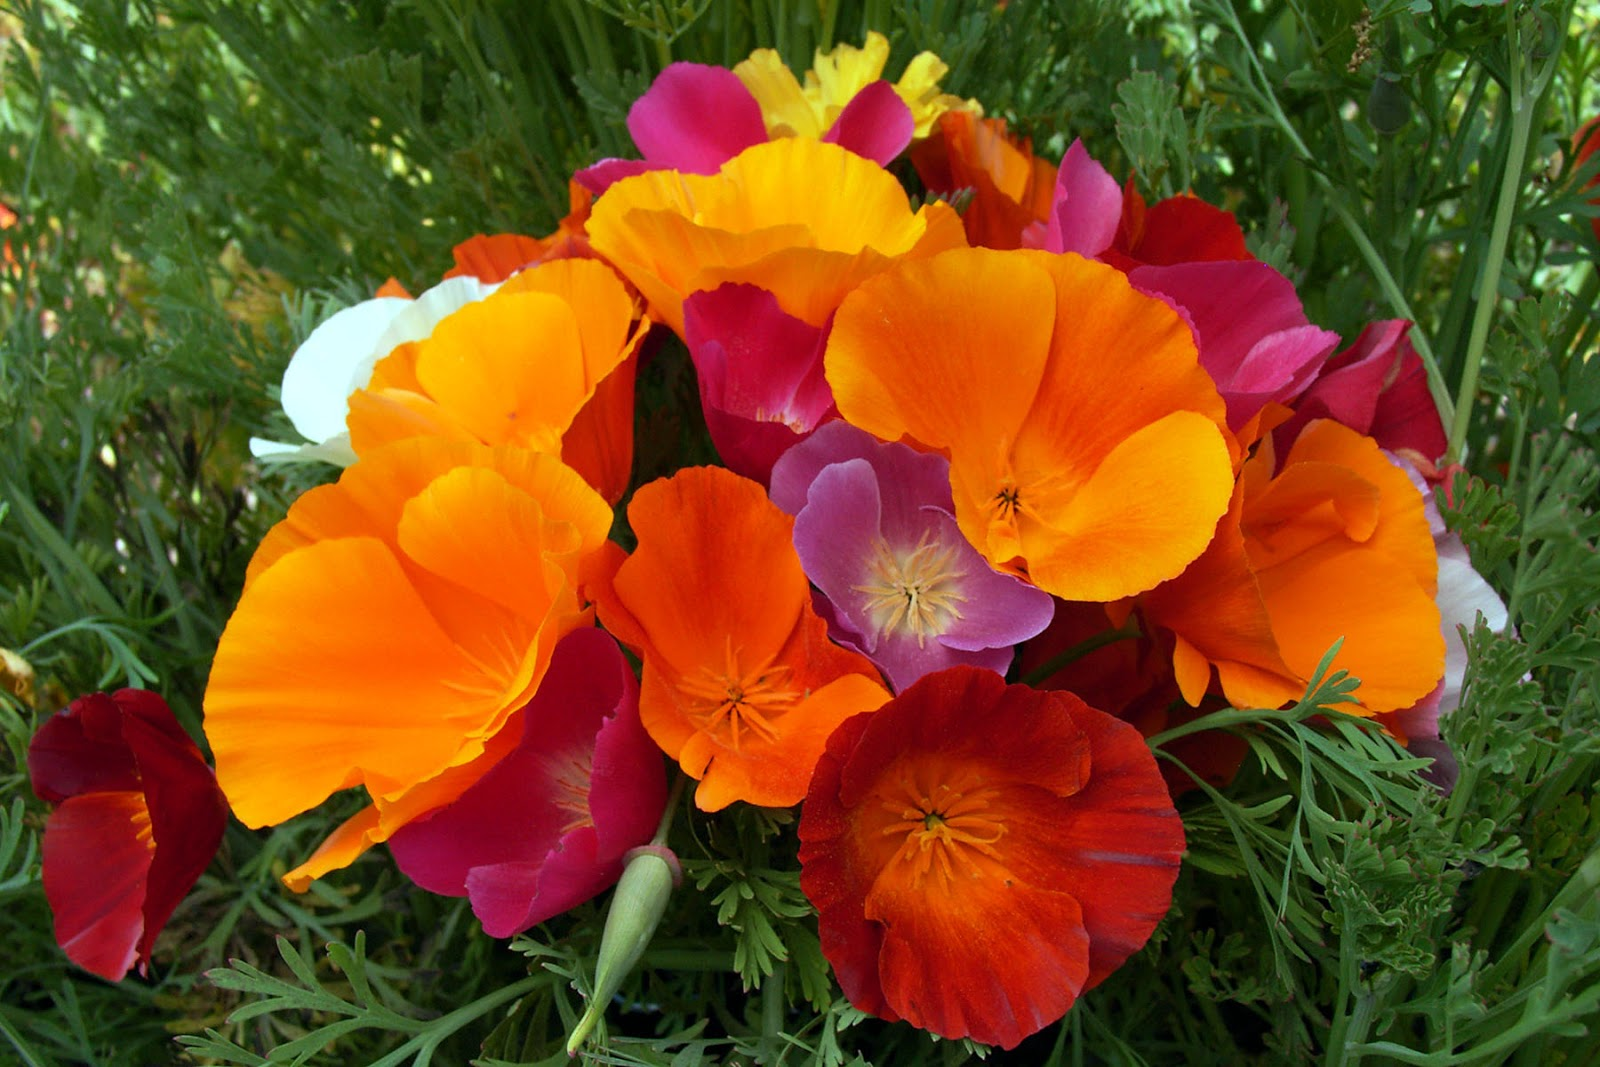 California Poppy Mix Eschscholzia Californica 2 Grams Flower Seeds